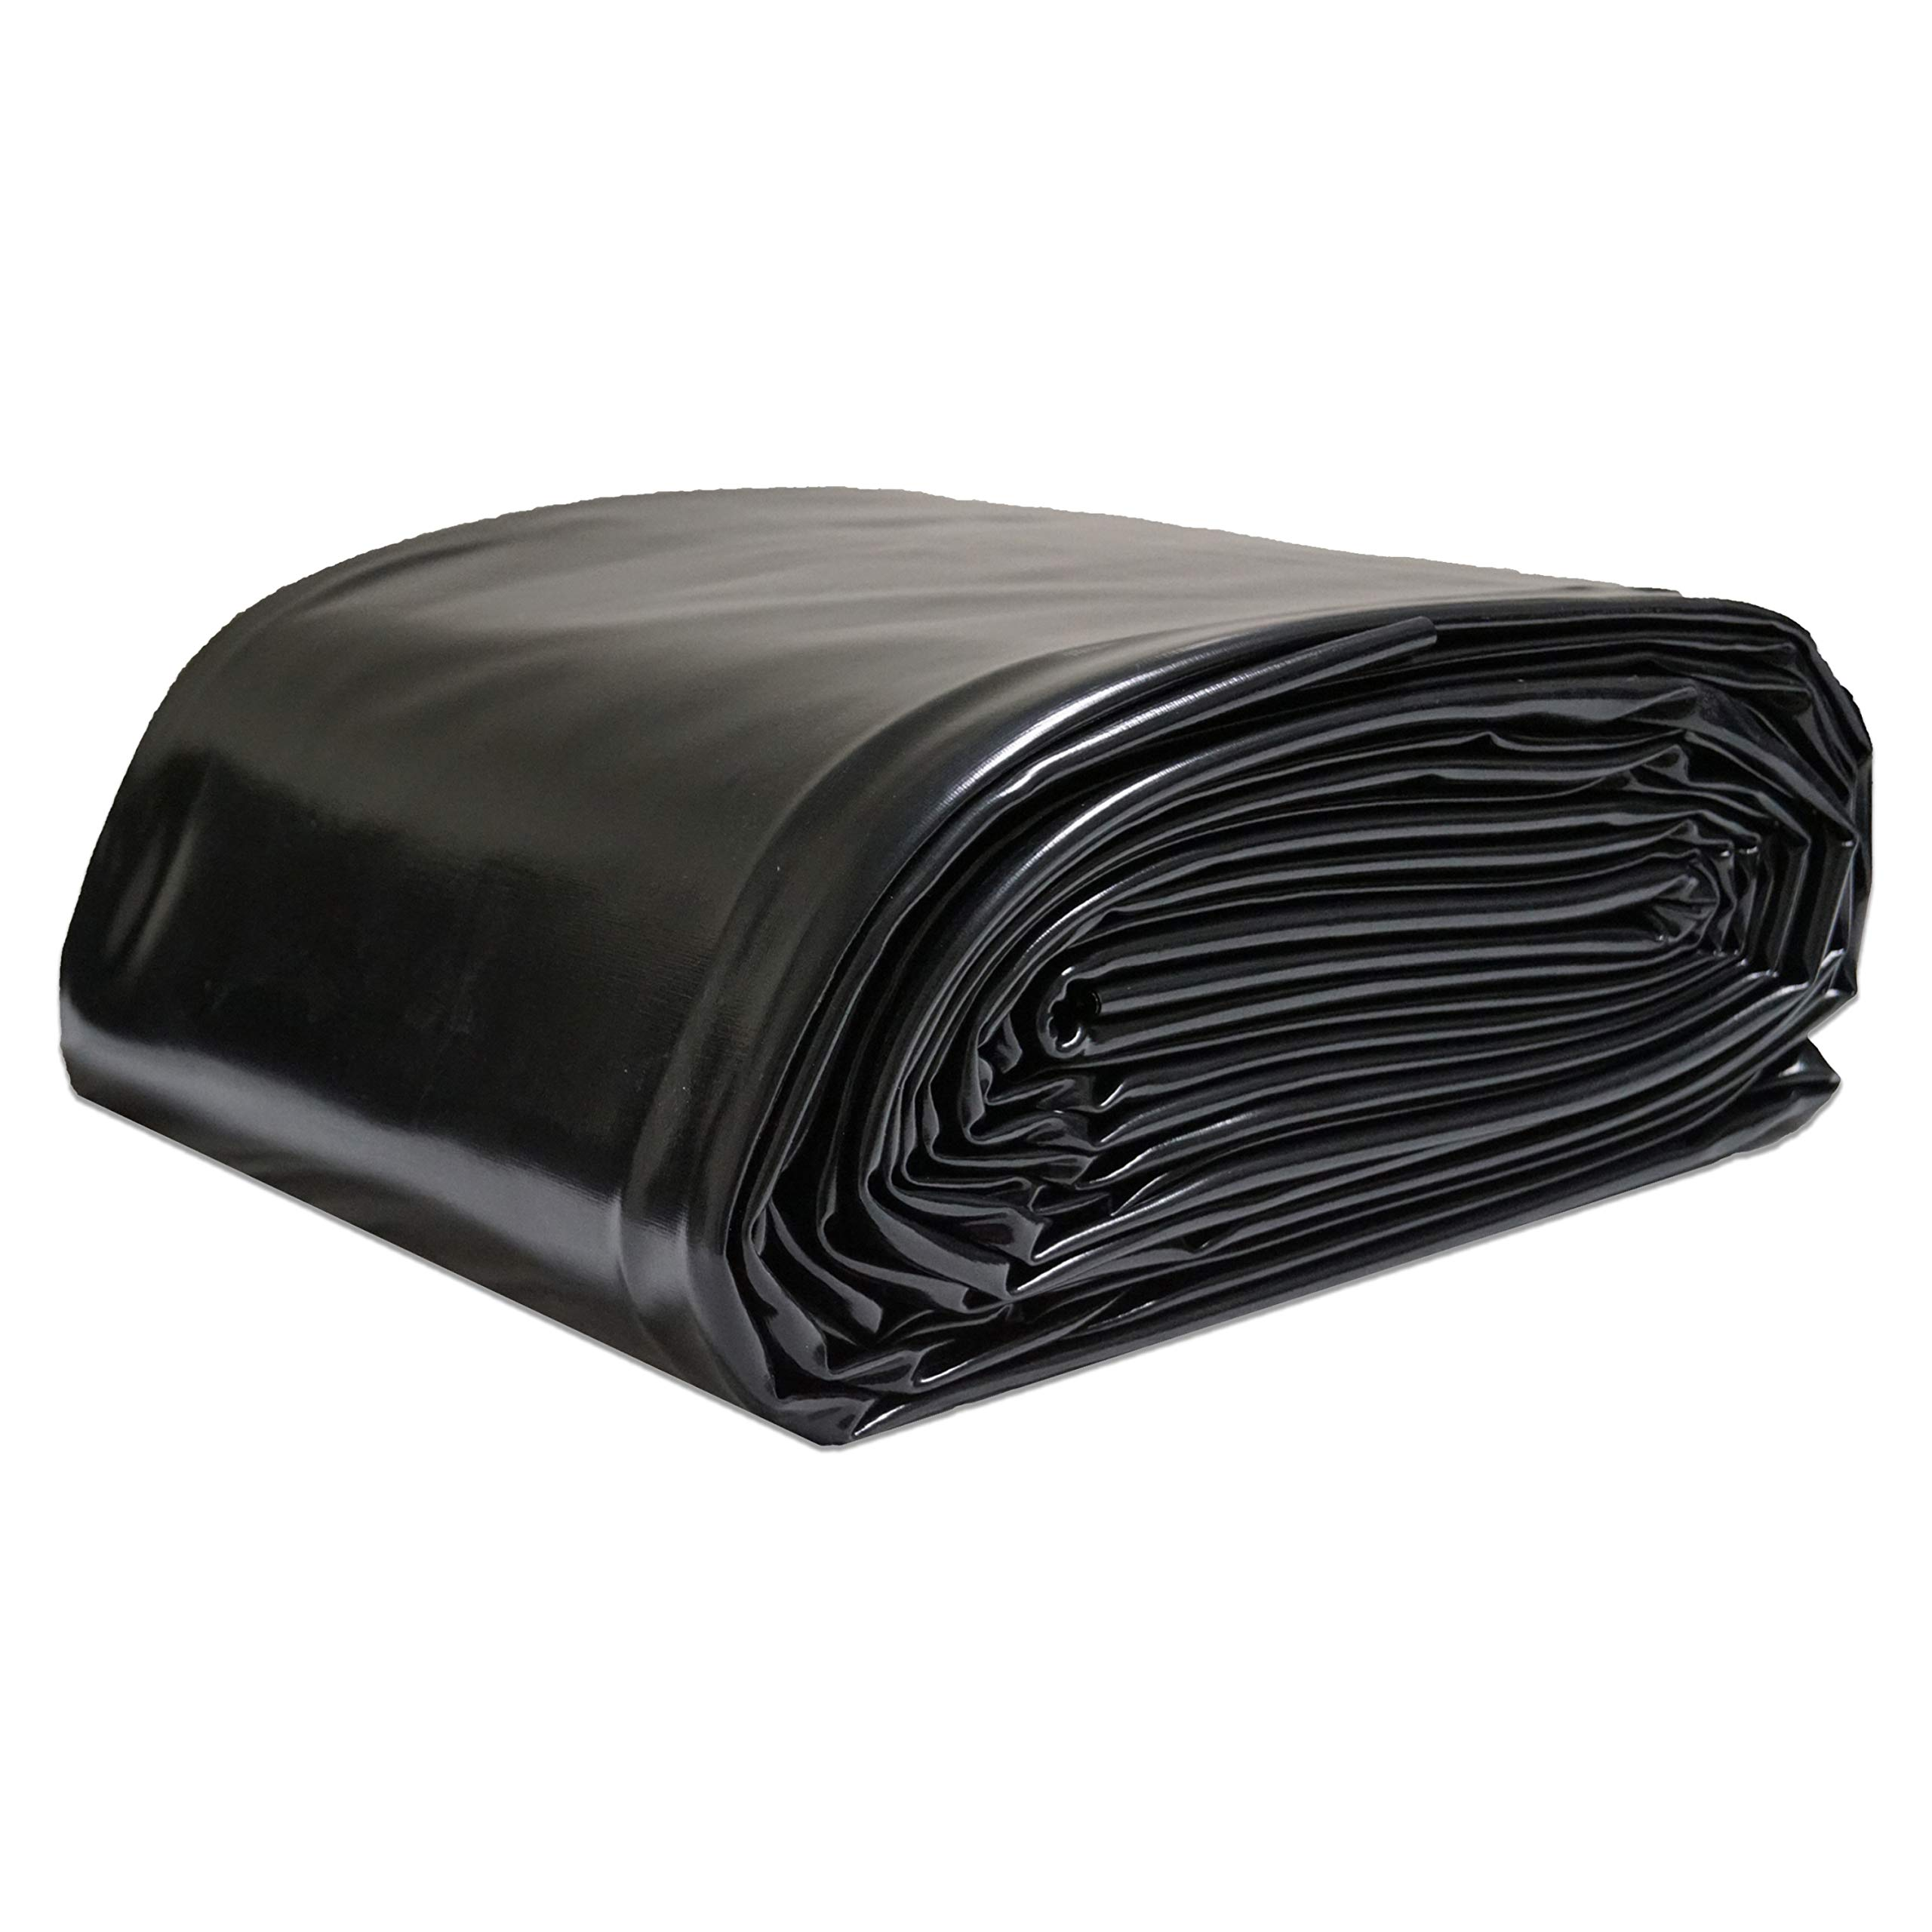 PolyGuard Liners PVC - 15 ft. x 15 ft. 20-Mil Pond Liner by PolyGuard